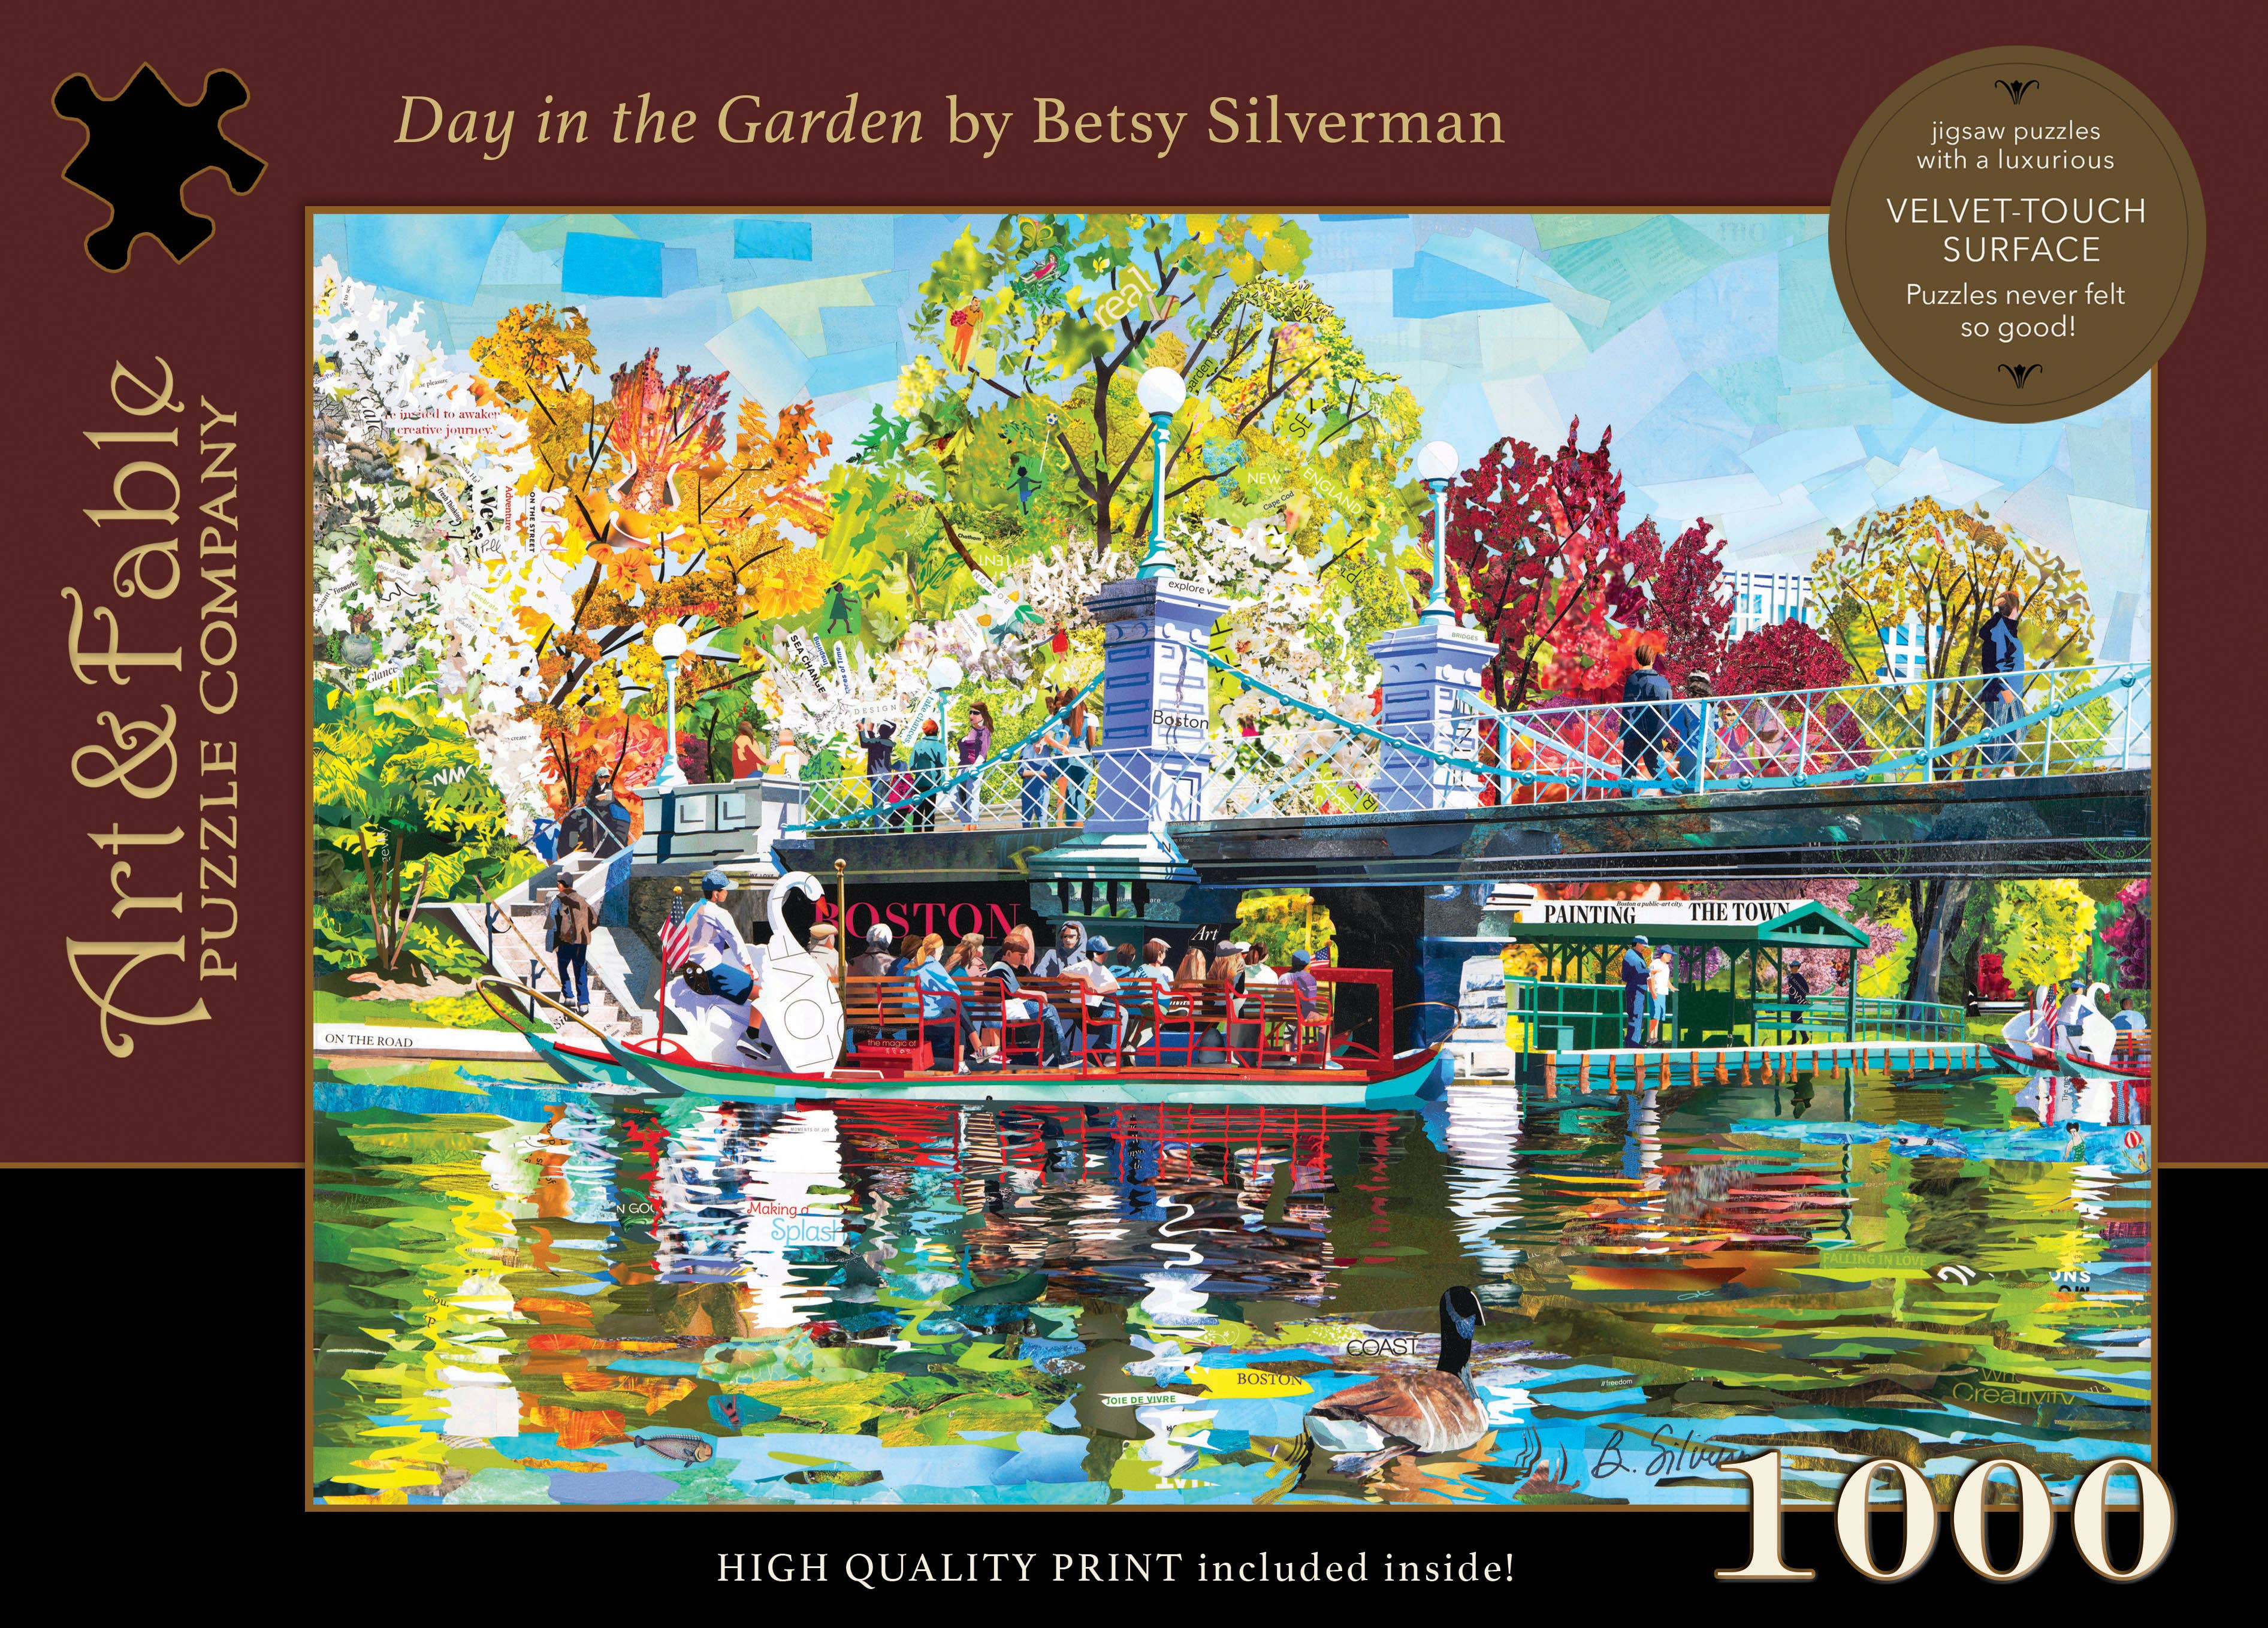 Day in the Garden, 1000-pc Velvet-Touch Jigsaw Puzzle featuring the art of Betsy Silverman | Trada Marketplace